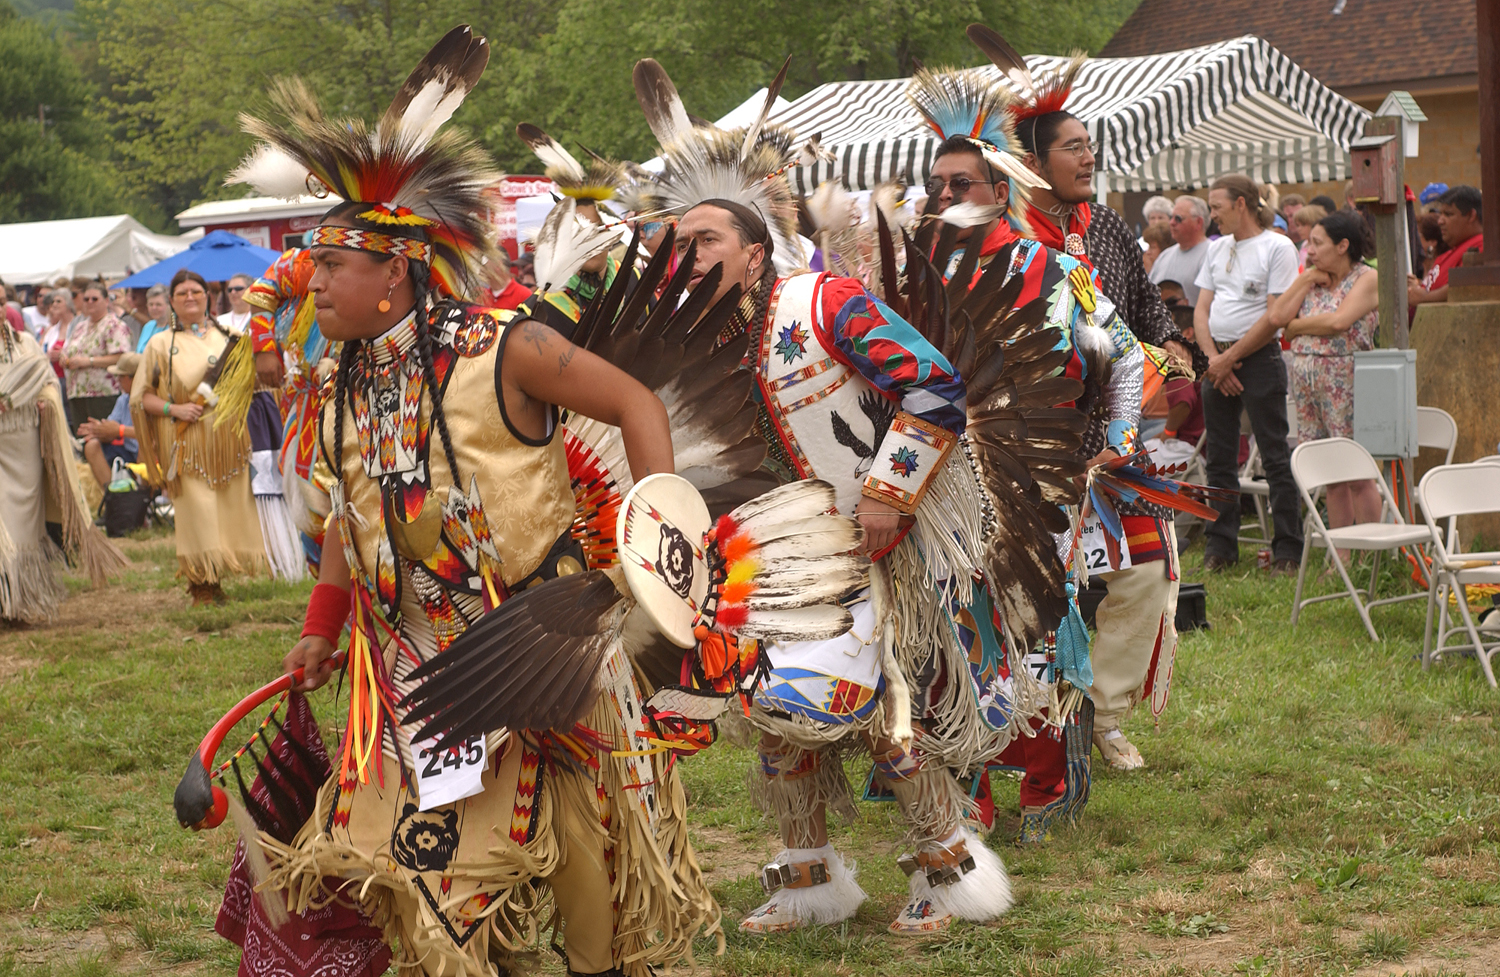 Eastern Band Of Cherokee Hosts Fourth Of July Pow Wow July 1 2 At